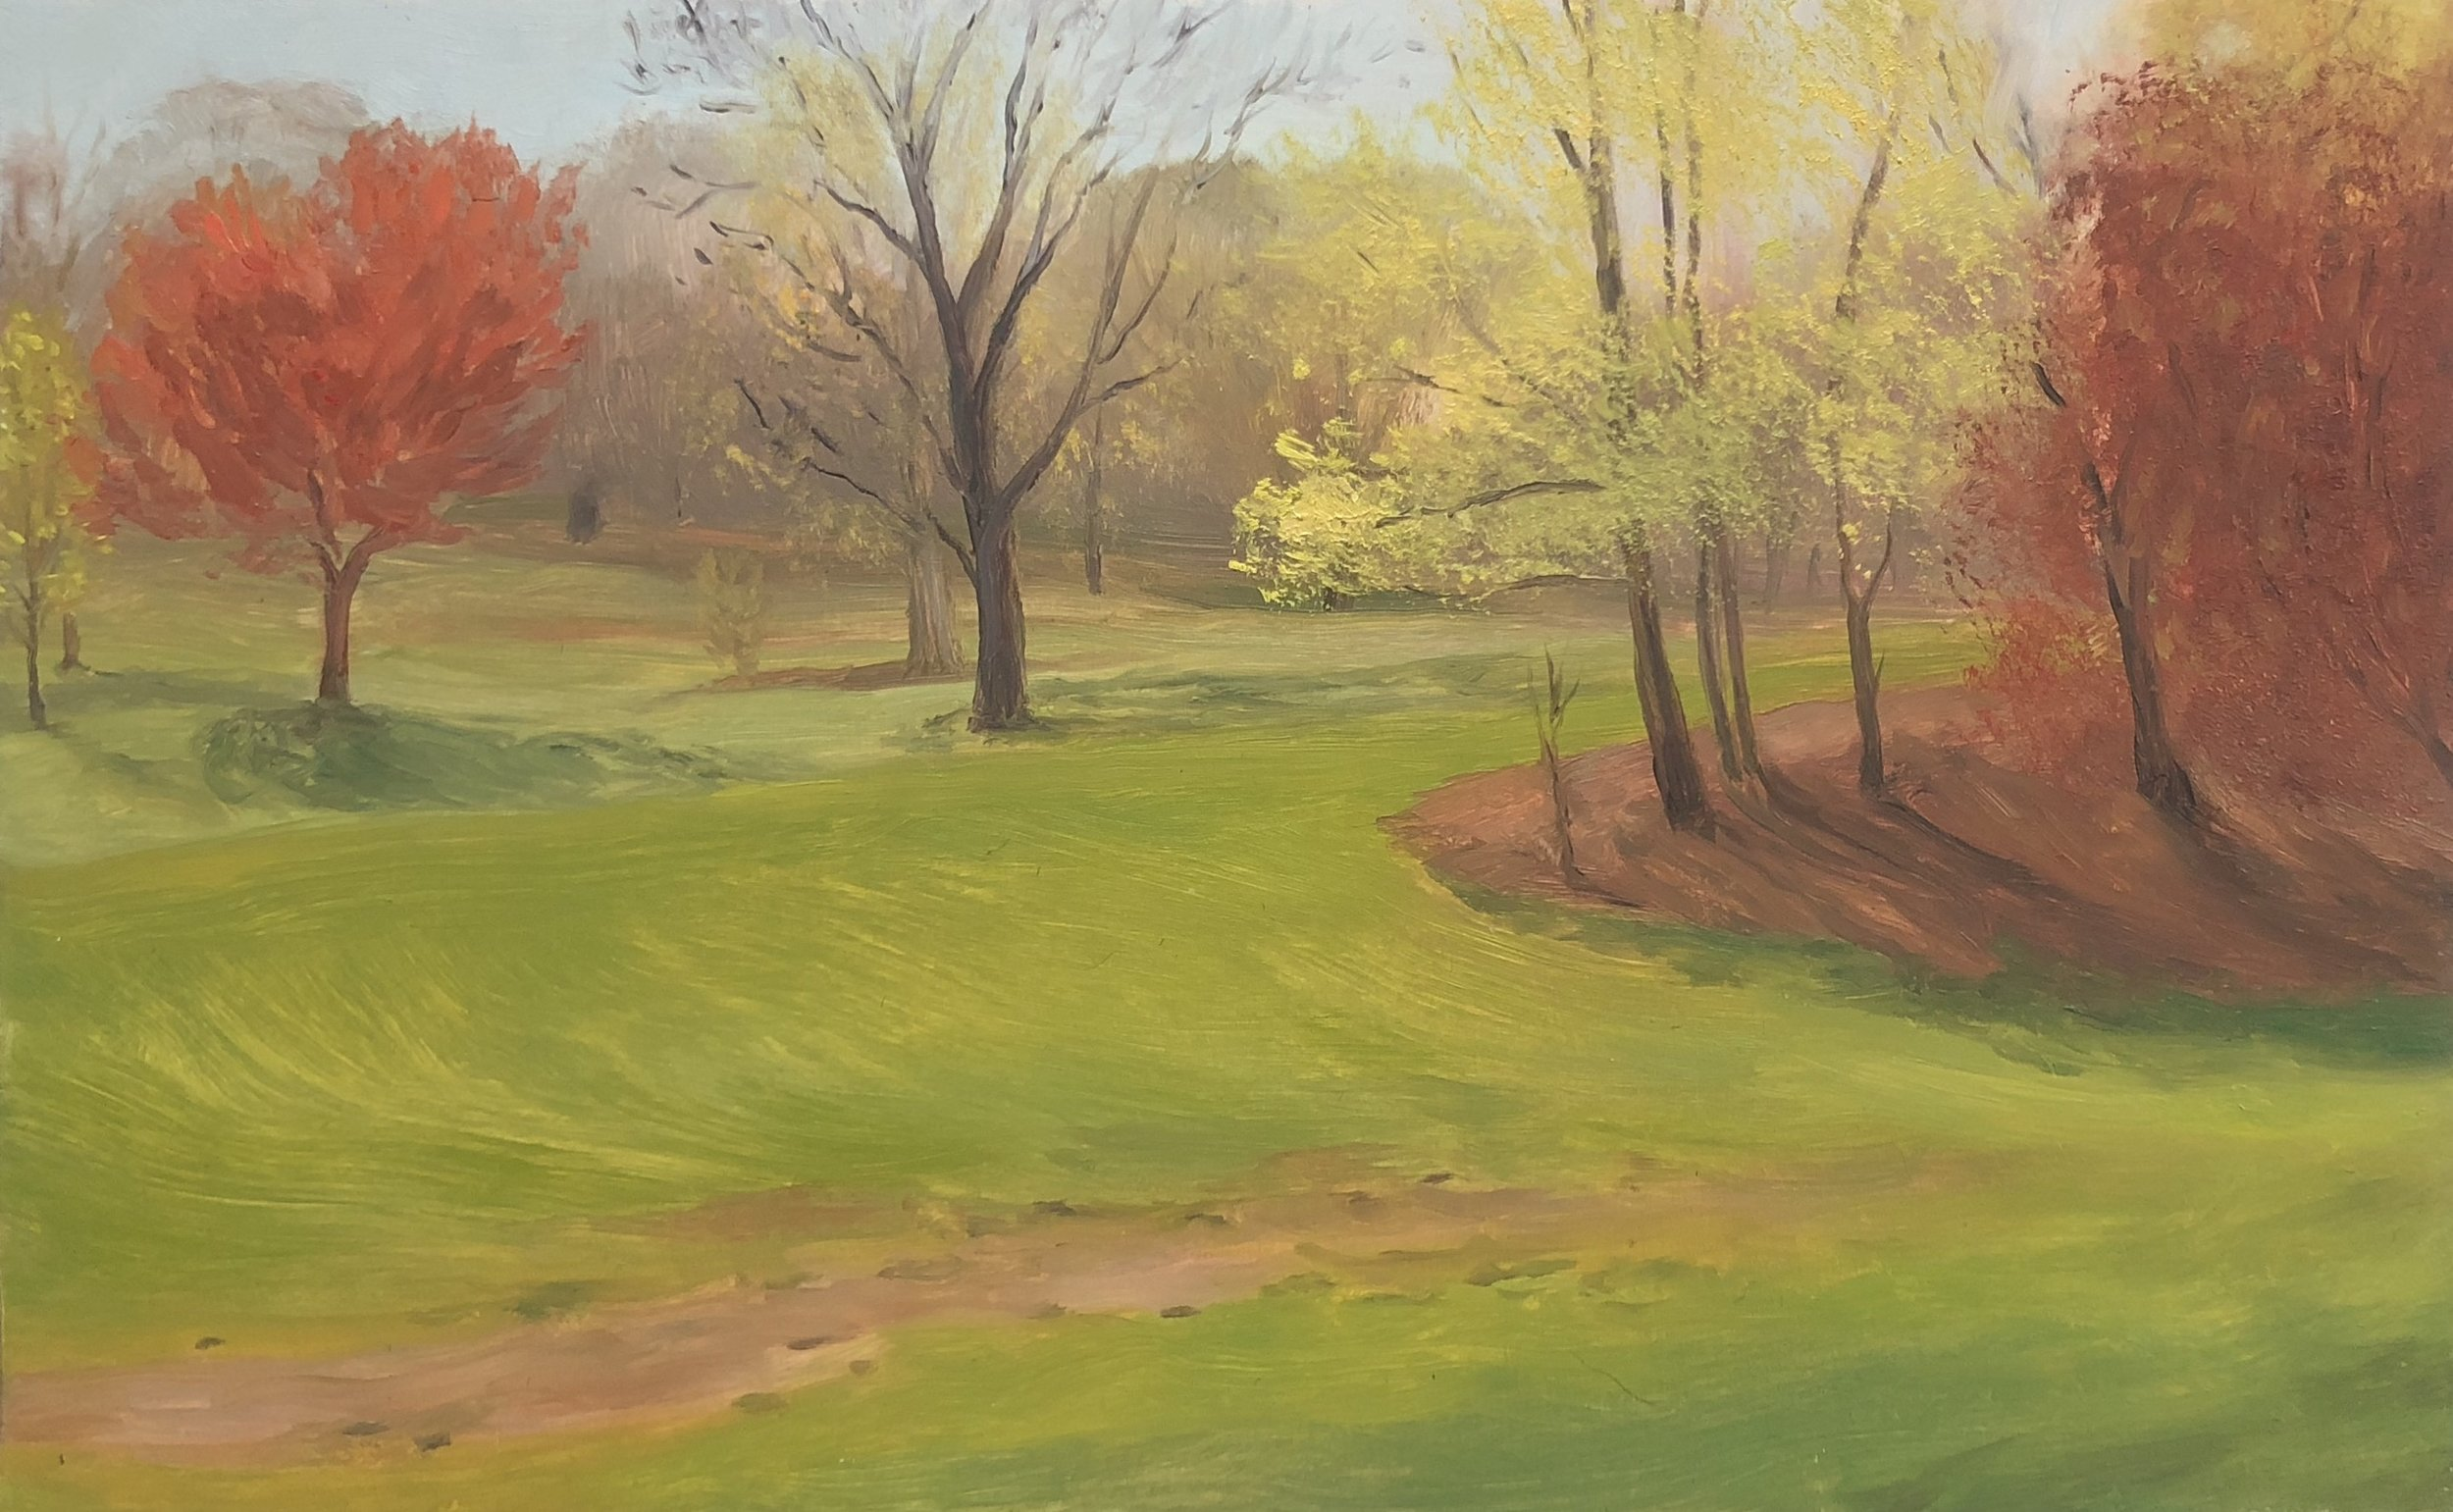 Prospect Park #1 Oil on panel 5 1/2 by 8 inches 2018